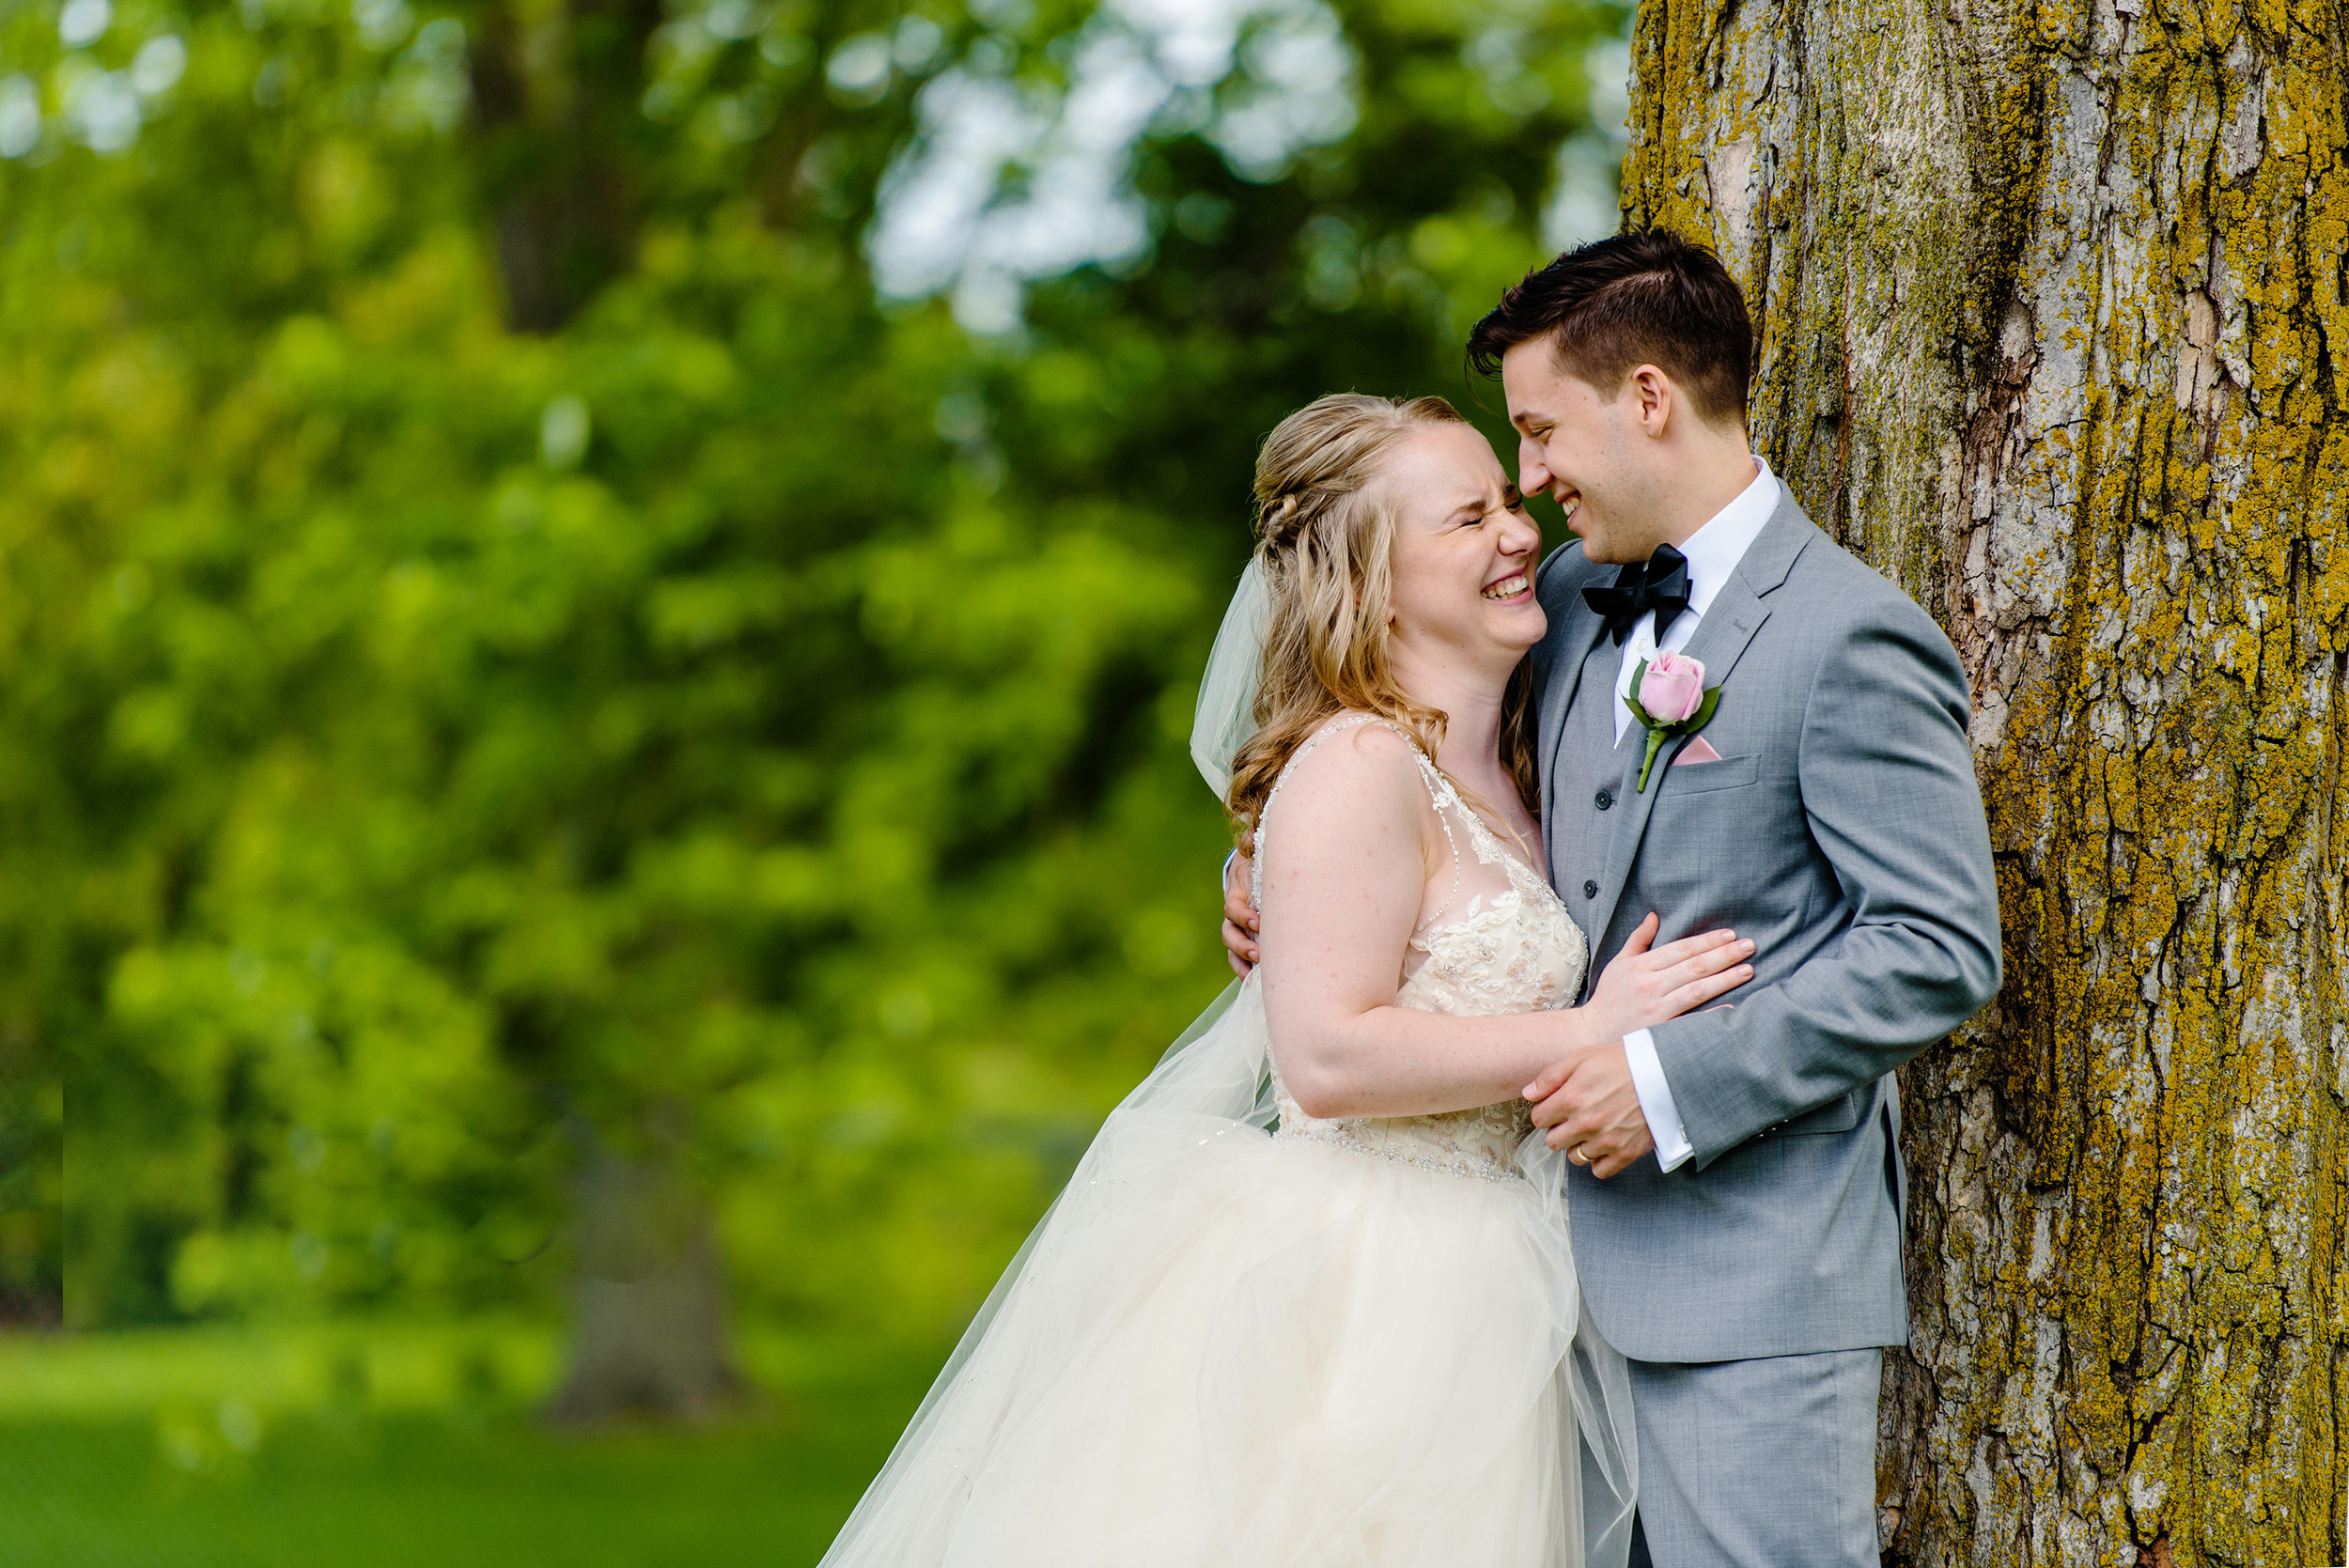 bride-and-groom-have-a-funny-moment-at-major-hill-park-in-ottawa.jpg